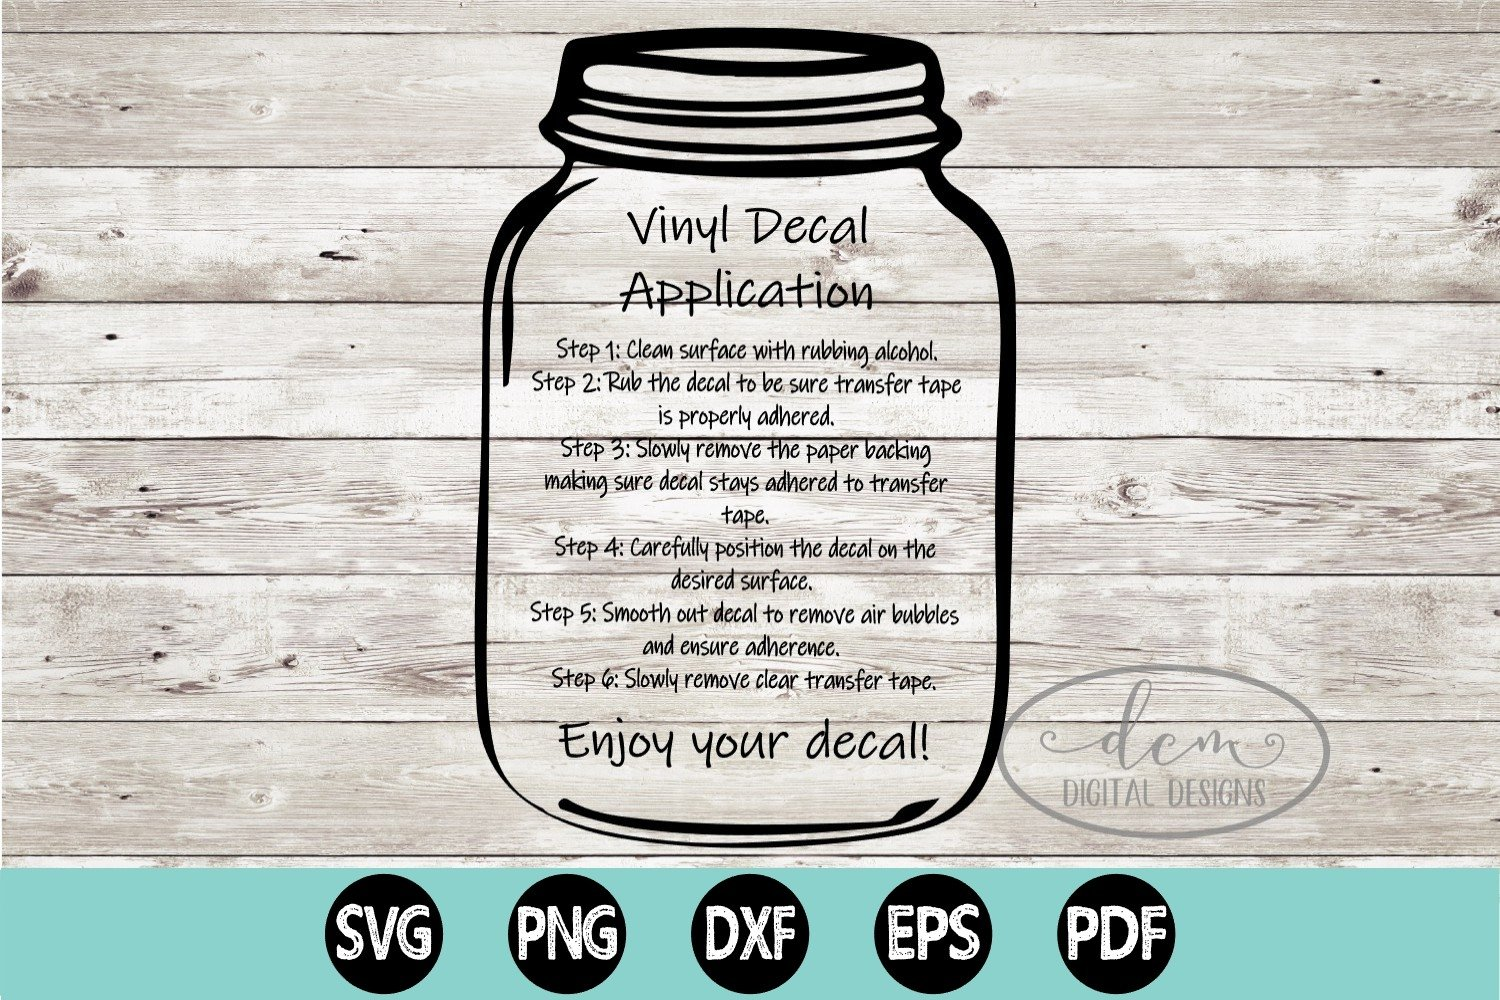 Vinyl Decal Application Instructions printable PNG SVG ...